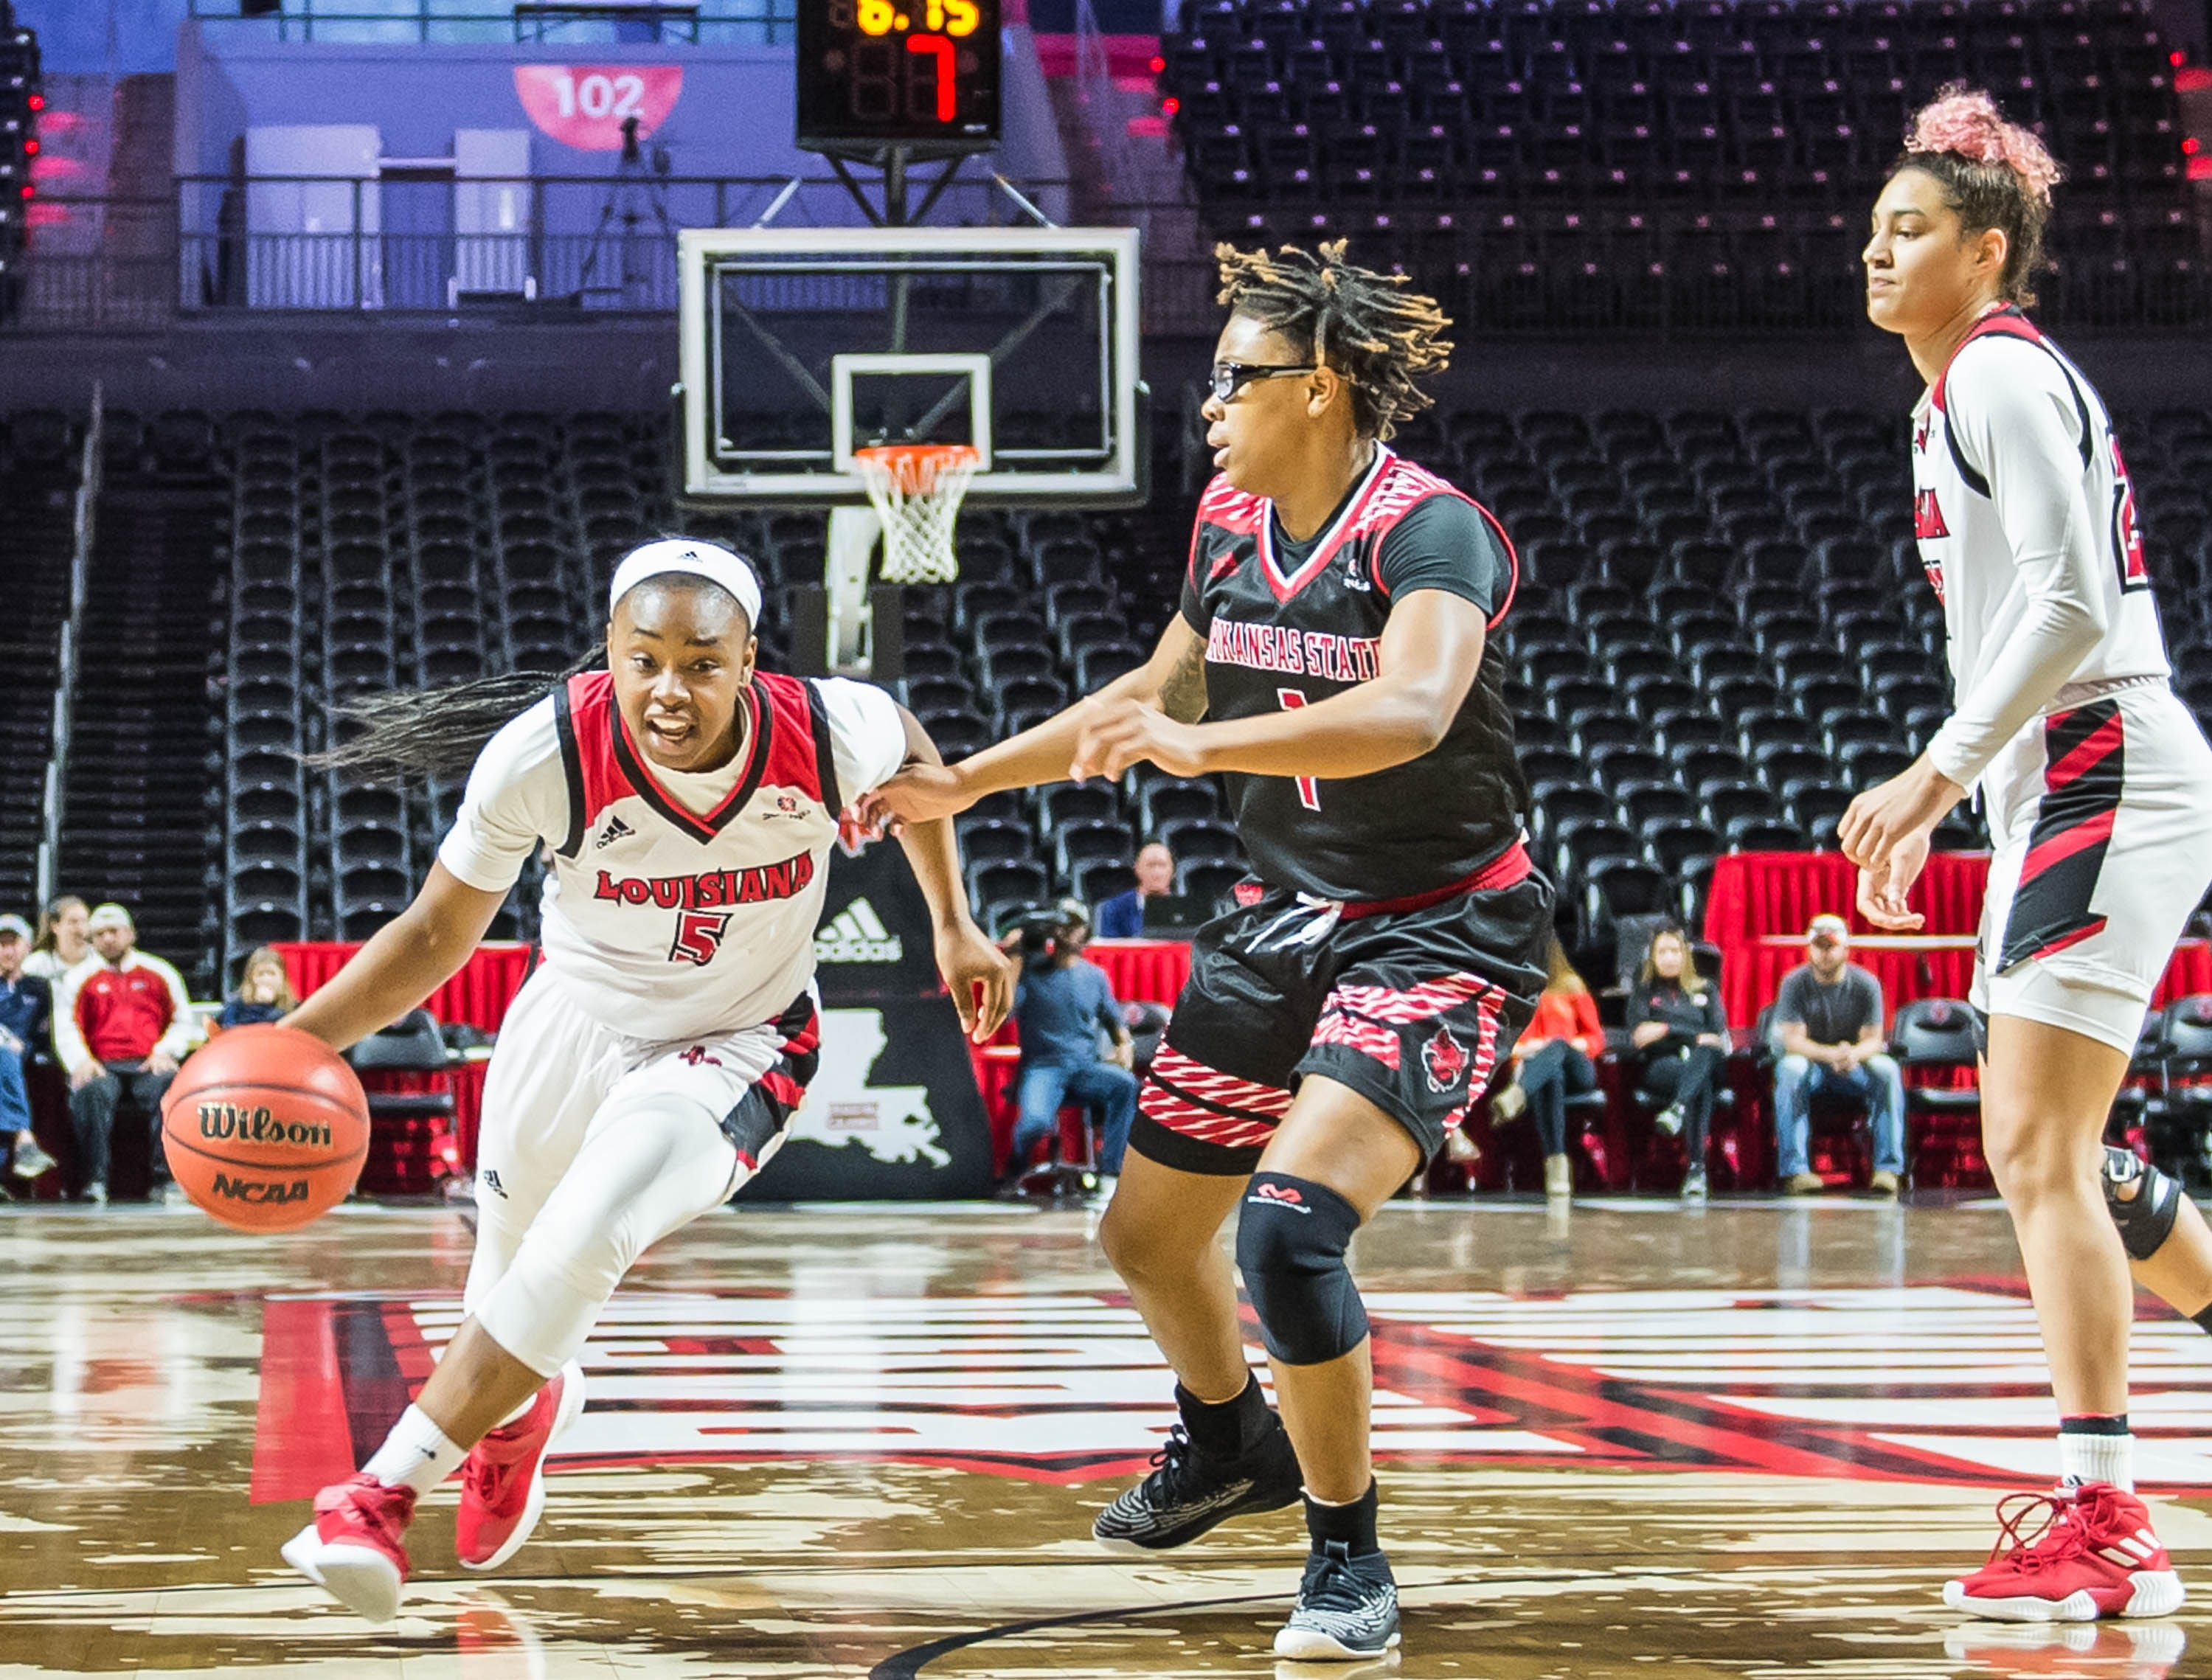 Ragin' Cajuns guard Jomyra Mathis (5) takes the ball up the middle as the Cajuns women's basketball team plays the Arkansas State Red Wolves at the Cajundome on Saturday, March 9, 2019.